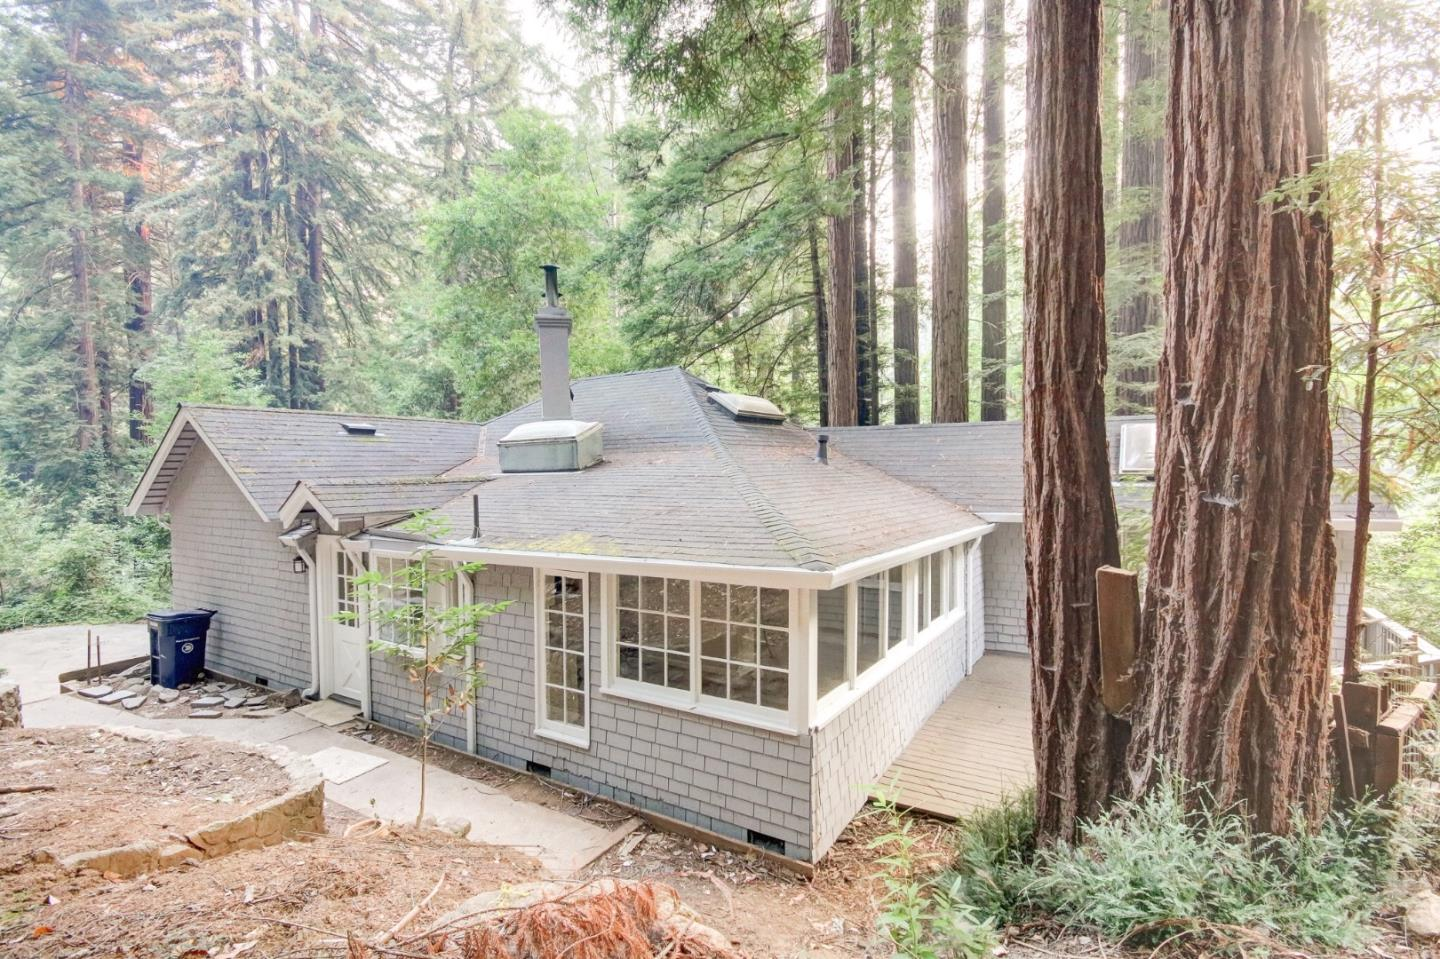 Updated and spacious home behind the Brookdale Lodge!  Loads of light and windows to enjoy the natural beauty of the Redwoods! High/cathedral ceiling in Living room and a wood burning stove. New Kitchen with shaker cabinets, quartz counters and New stainless appliances.  New wood laminate floors, new paint, new carpet, new light and plumbing fixtures! Master with pretty views and Baths are gorgeous and updated! Large basement area, plenty of parking and lovely view deck!  You will love the proximity to the Lodge, restaurants and town, the tasteful updates and the beauty of the redwoods!